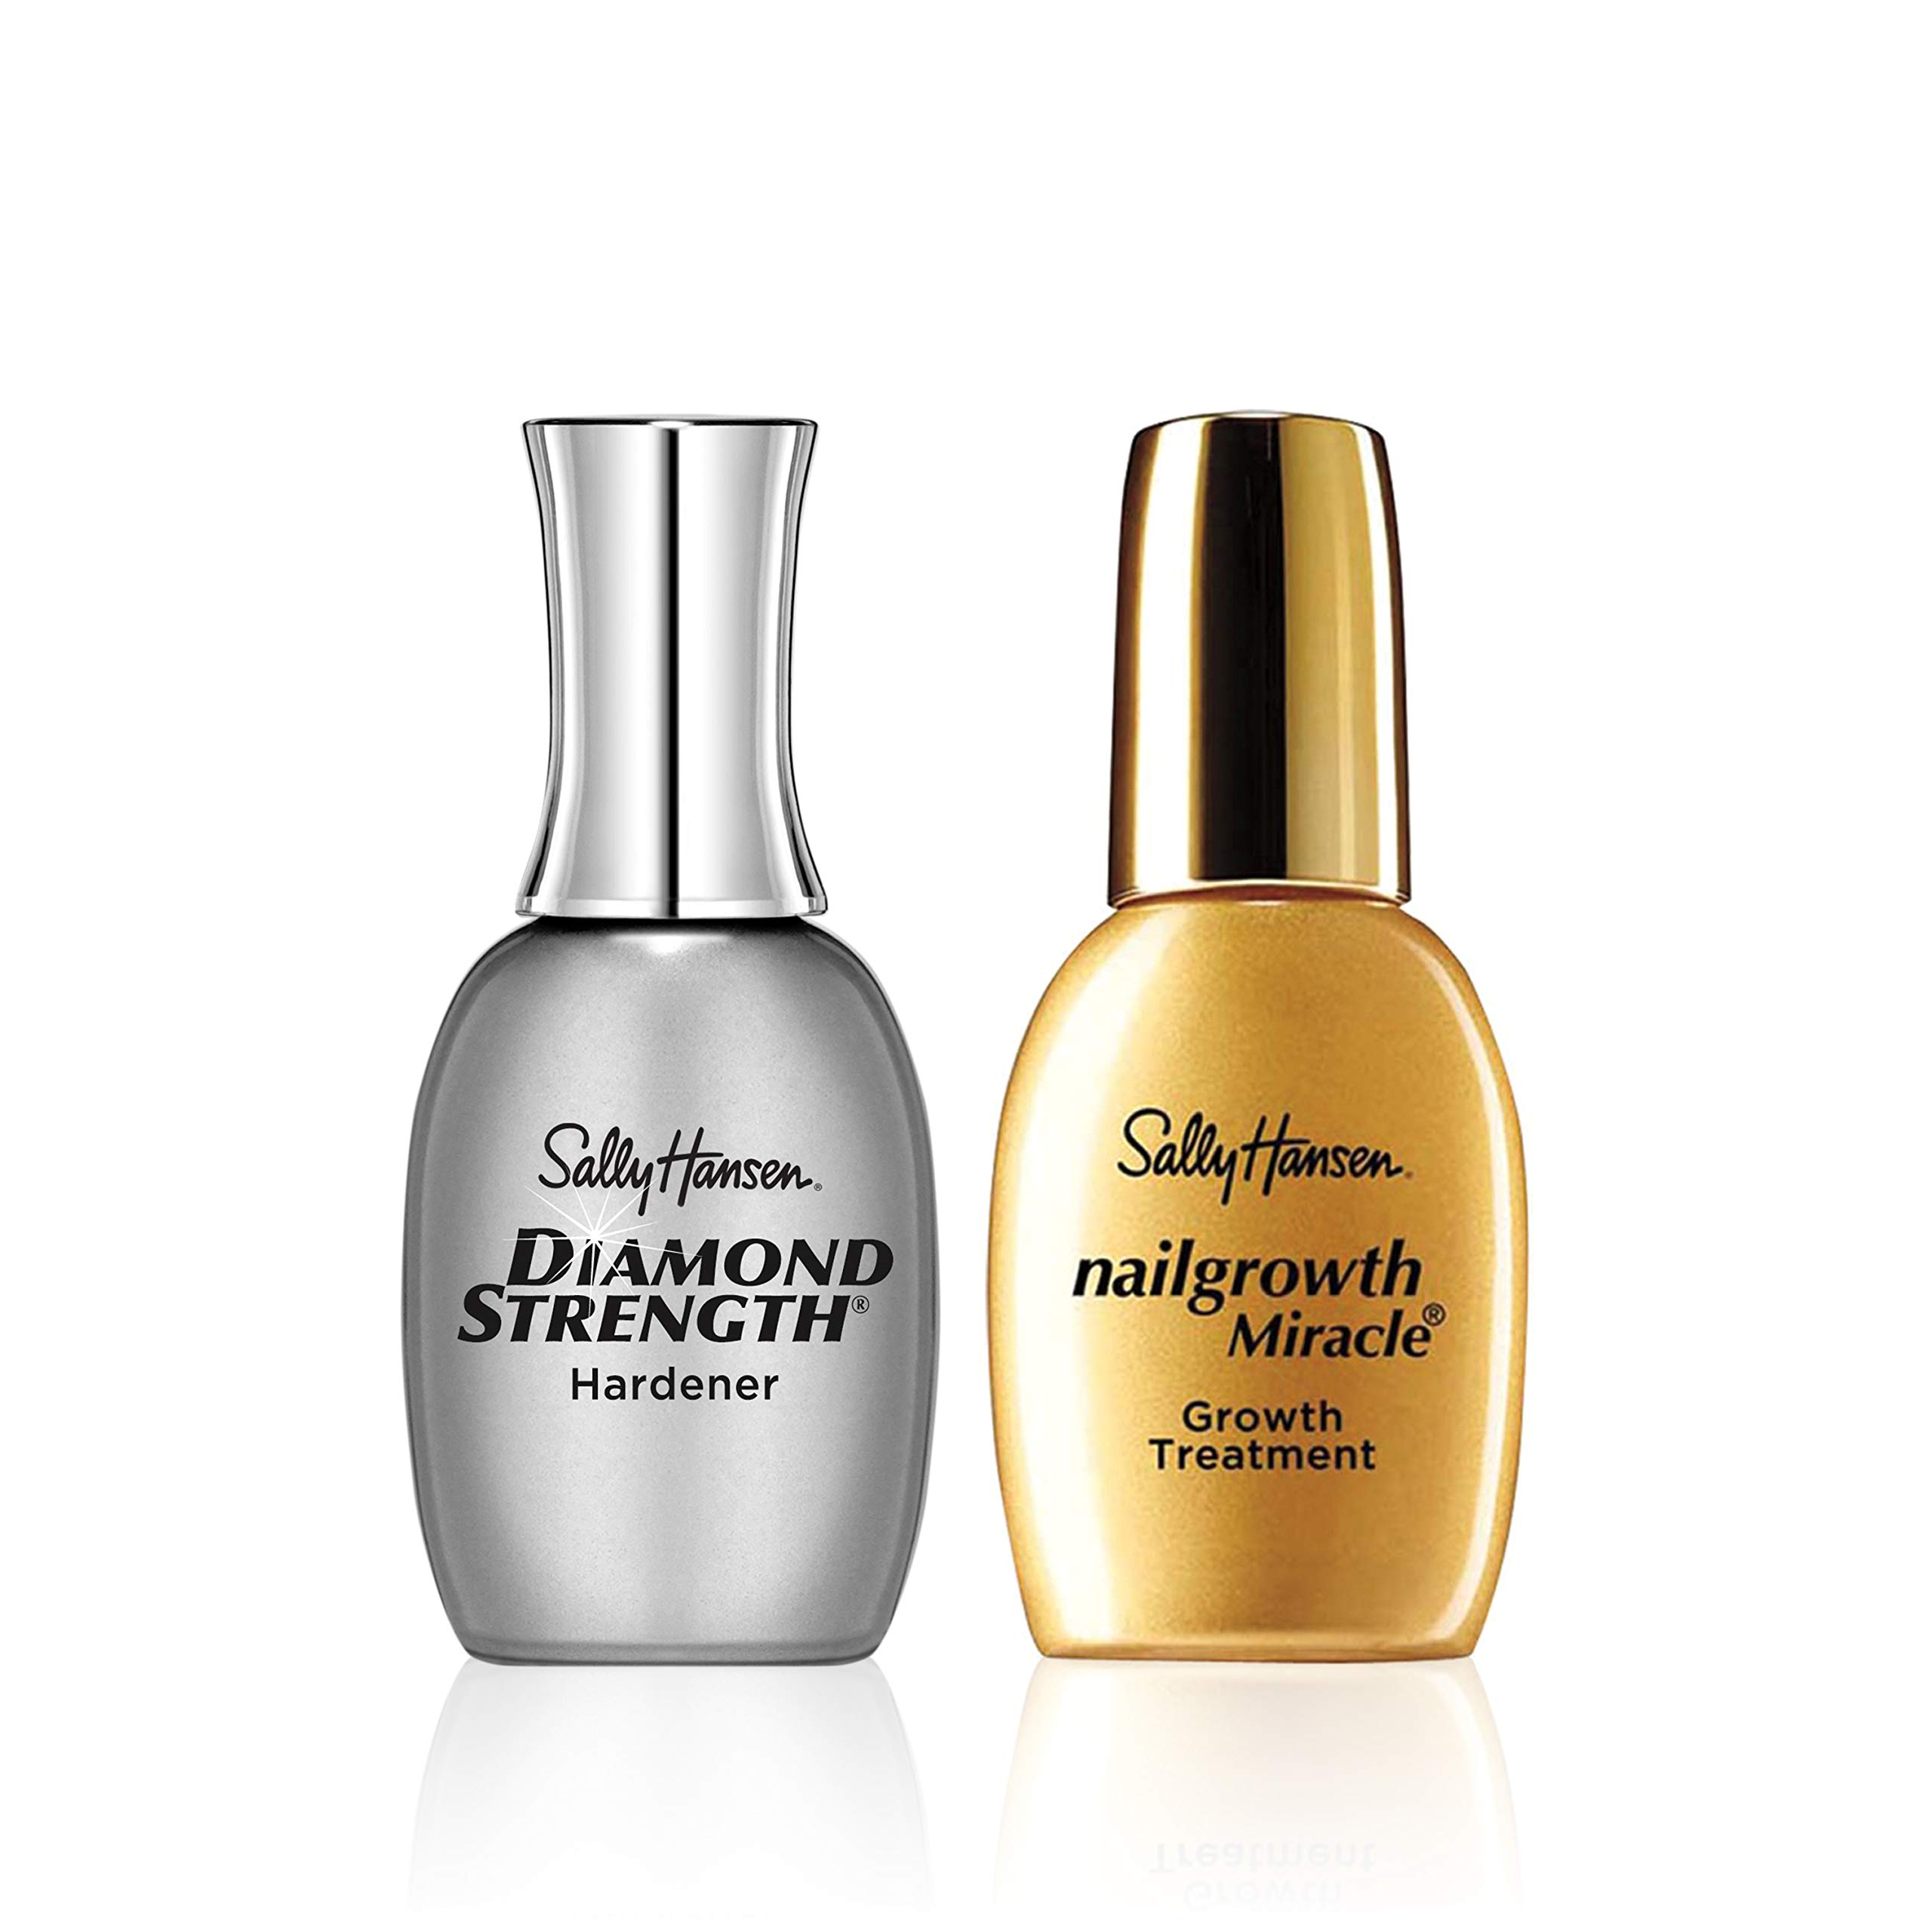 Sally Hansen Diamond Strength Instant Nail Hardener and Sally Hansen Nailgrowth Miracle Serum, Nail Kit, Pack of 2 by Sally Hansen